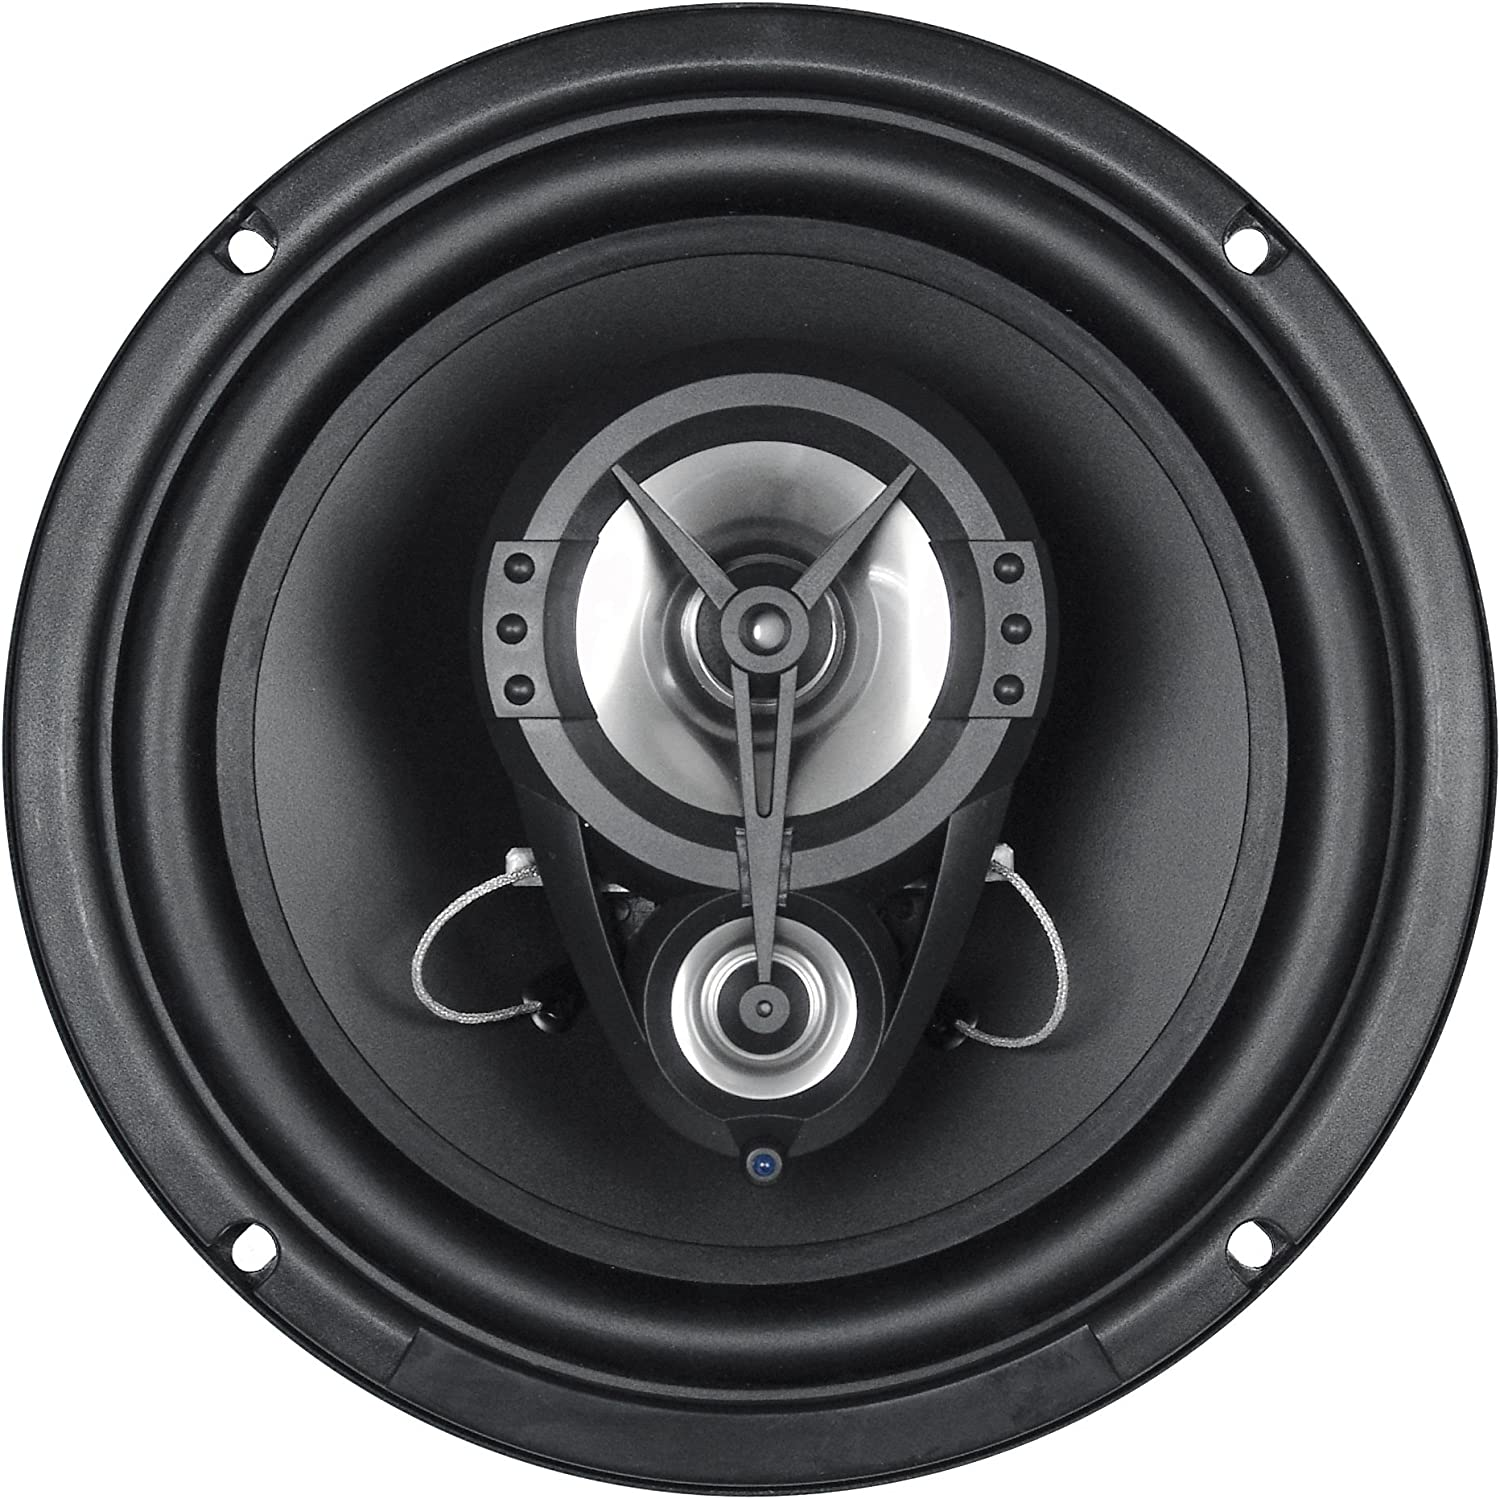 Renegade RX9 9-Inch Full Range 9-Way Speakers